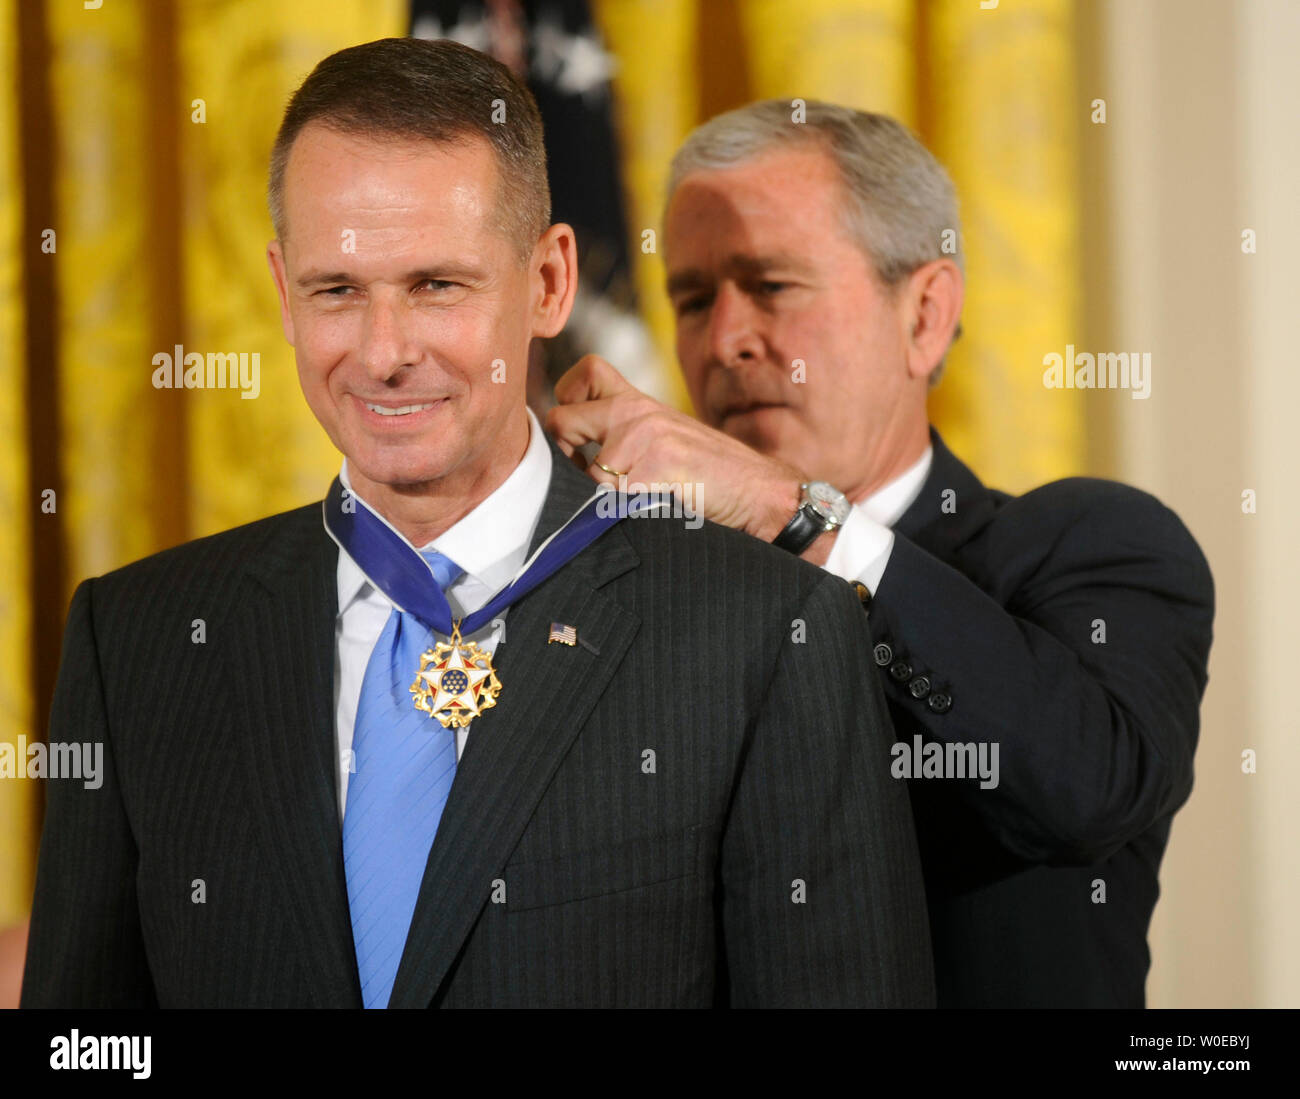 President George W. Bush awards the Presidential Medal of Freedom to former chairman of the Joint Chiefs of Staff Gen. Peter Pace during a ceremony in the East Room at the White House in Washington on June 19, 2008. (UPI Photo/Kevin Dietsch) - Stock Image